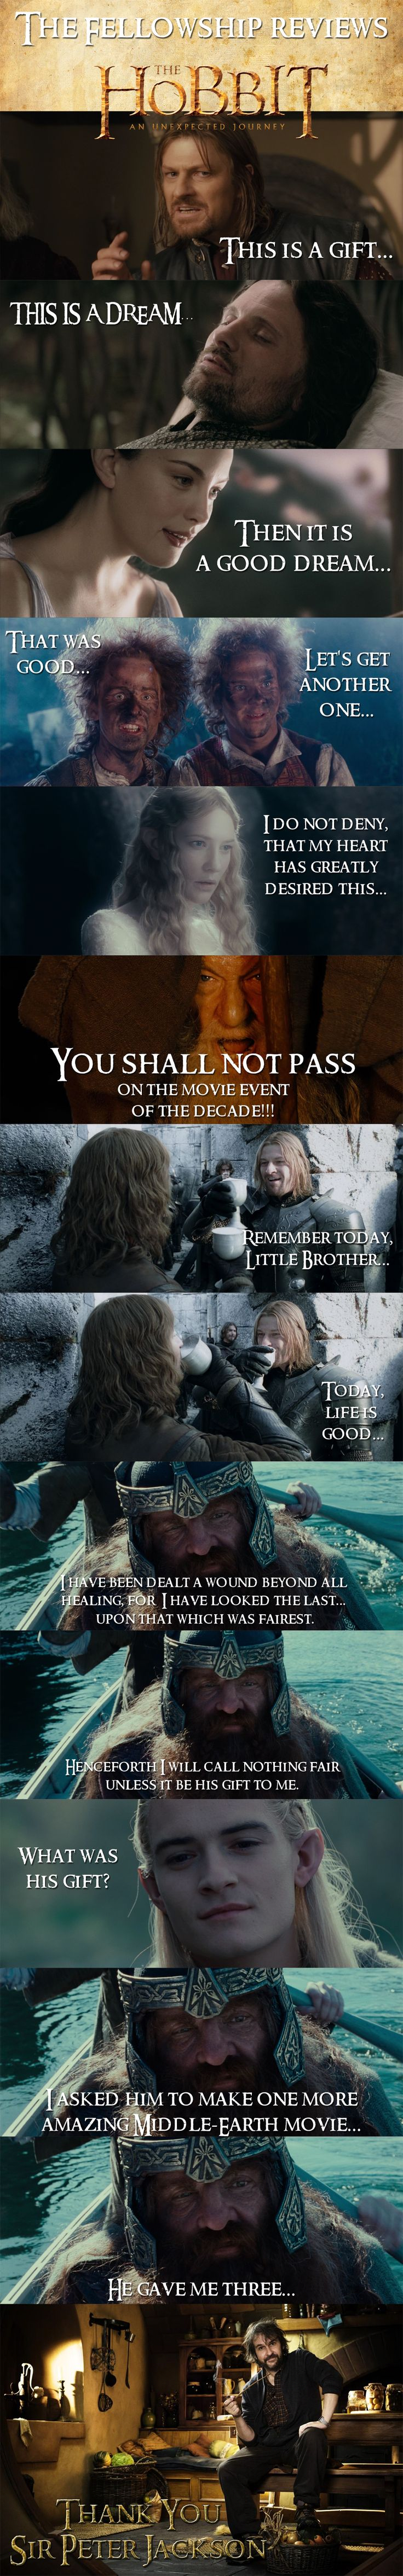 That one with Gimli is TOO perfect! This couldn't be more accurate. Thank you Peter Jackson and the entire team that put the films together.